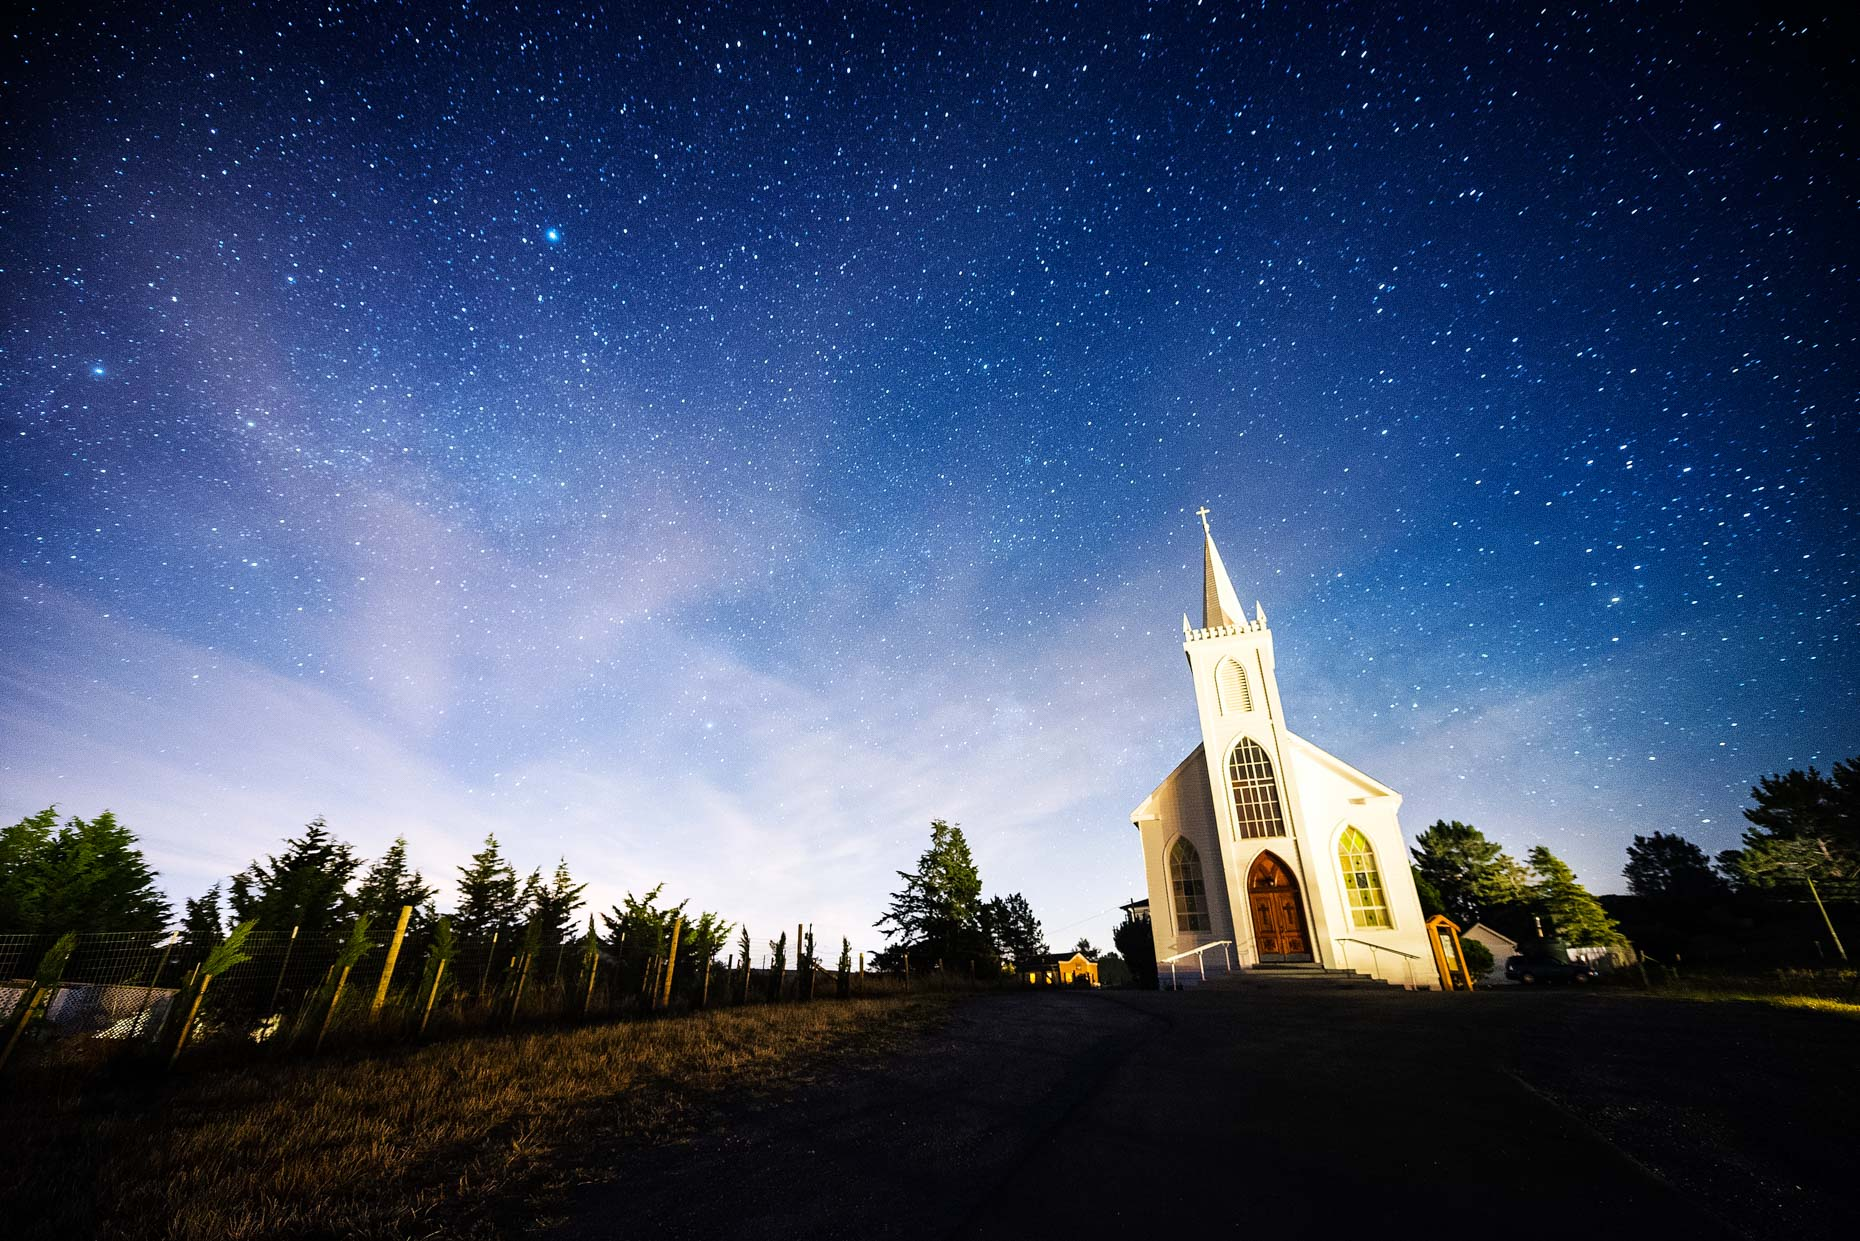 Bodega Church At Night - Bodega, California